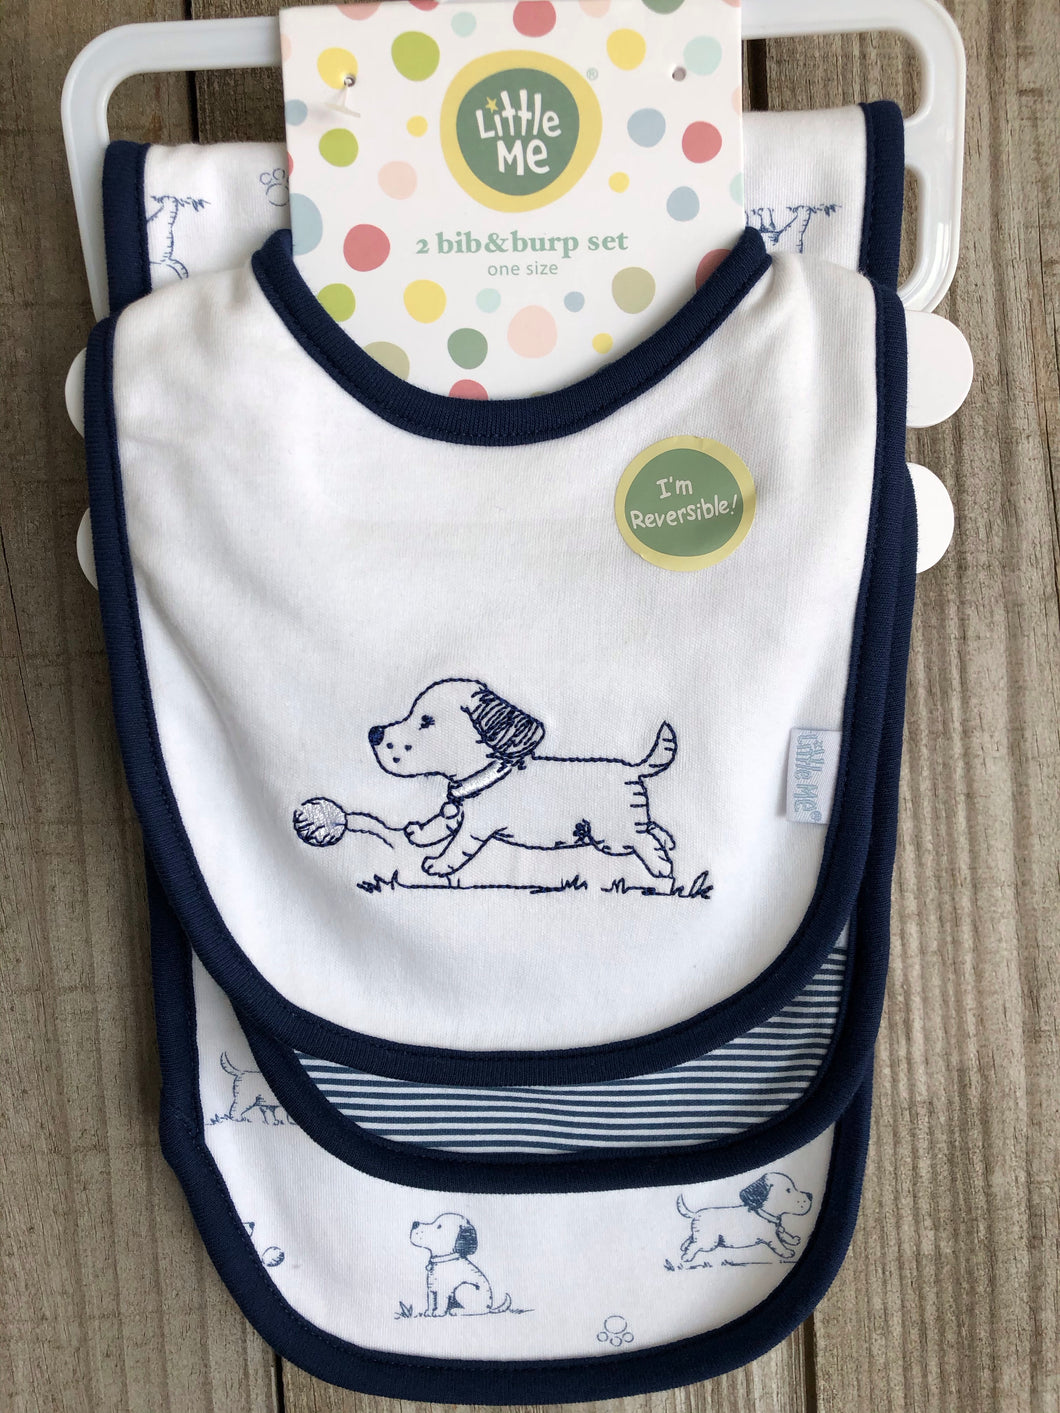 Navy Dog 2 Bib and Burp Set